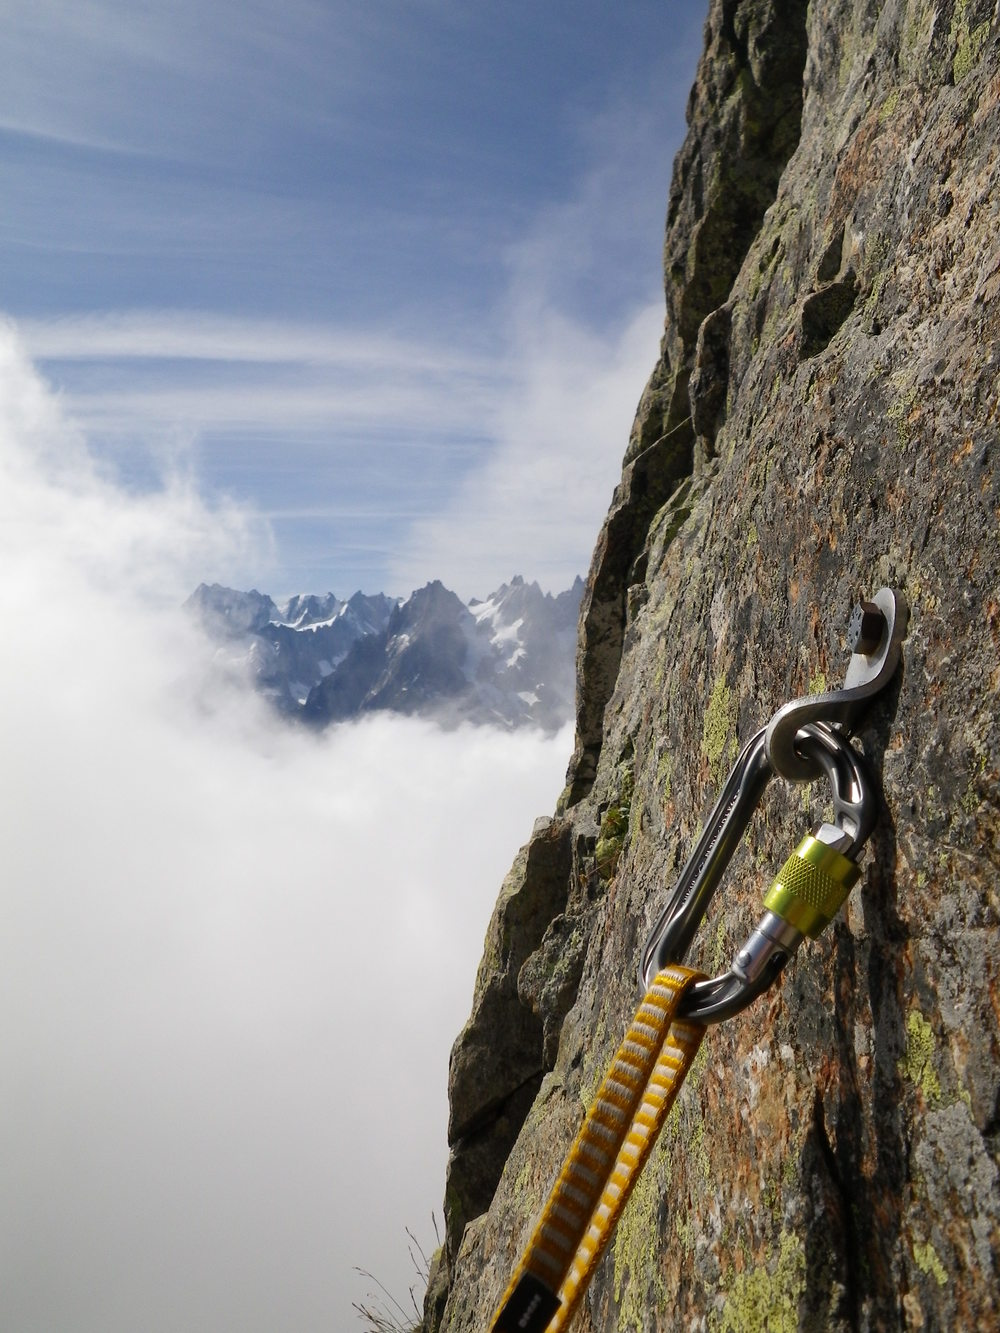 Rock climbing in the Aiguilles Rouges, Chamonix